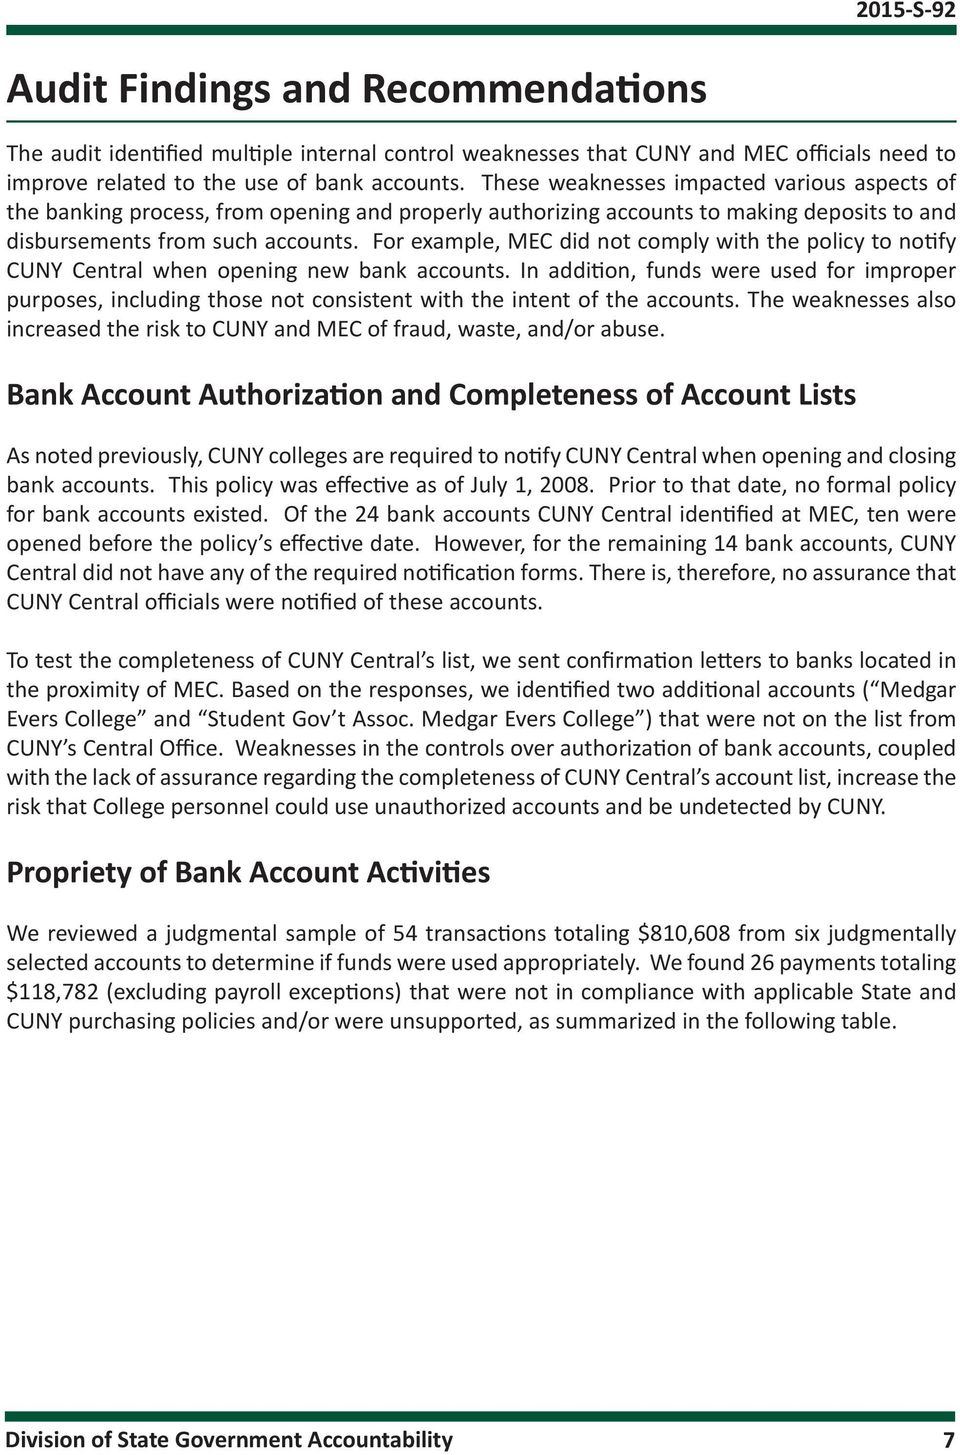 For example, MEC did not comply with the policy to notify CUNY Central when opening new bank accounts.